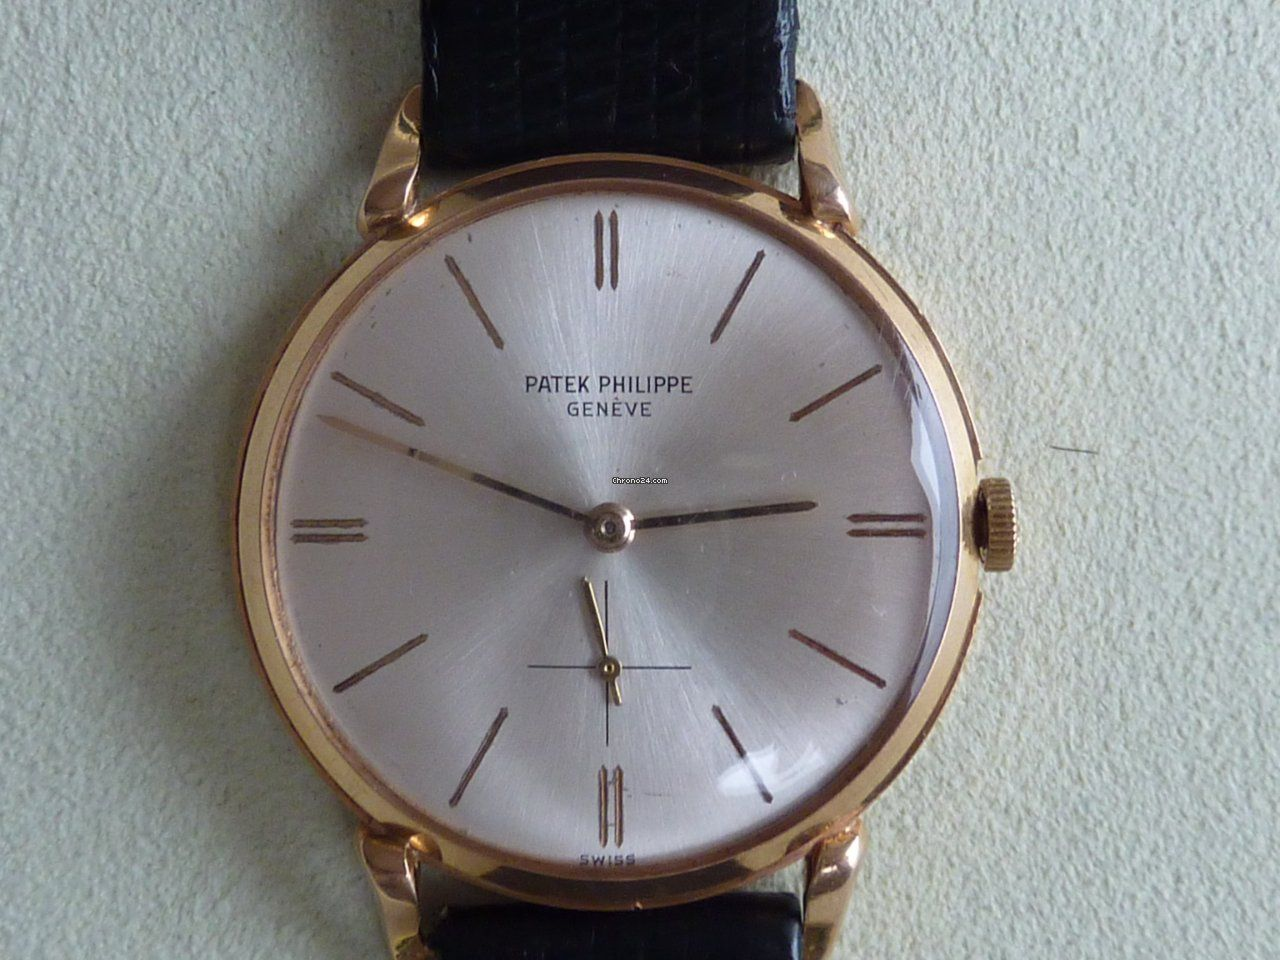 Patek Philippe Calatrava 18k Rose Gold Vintage Watch From 1962 For Gents Simply Timeless And Beautiful Patek Philippe Uhr